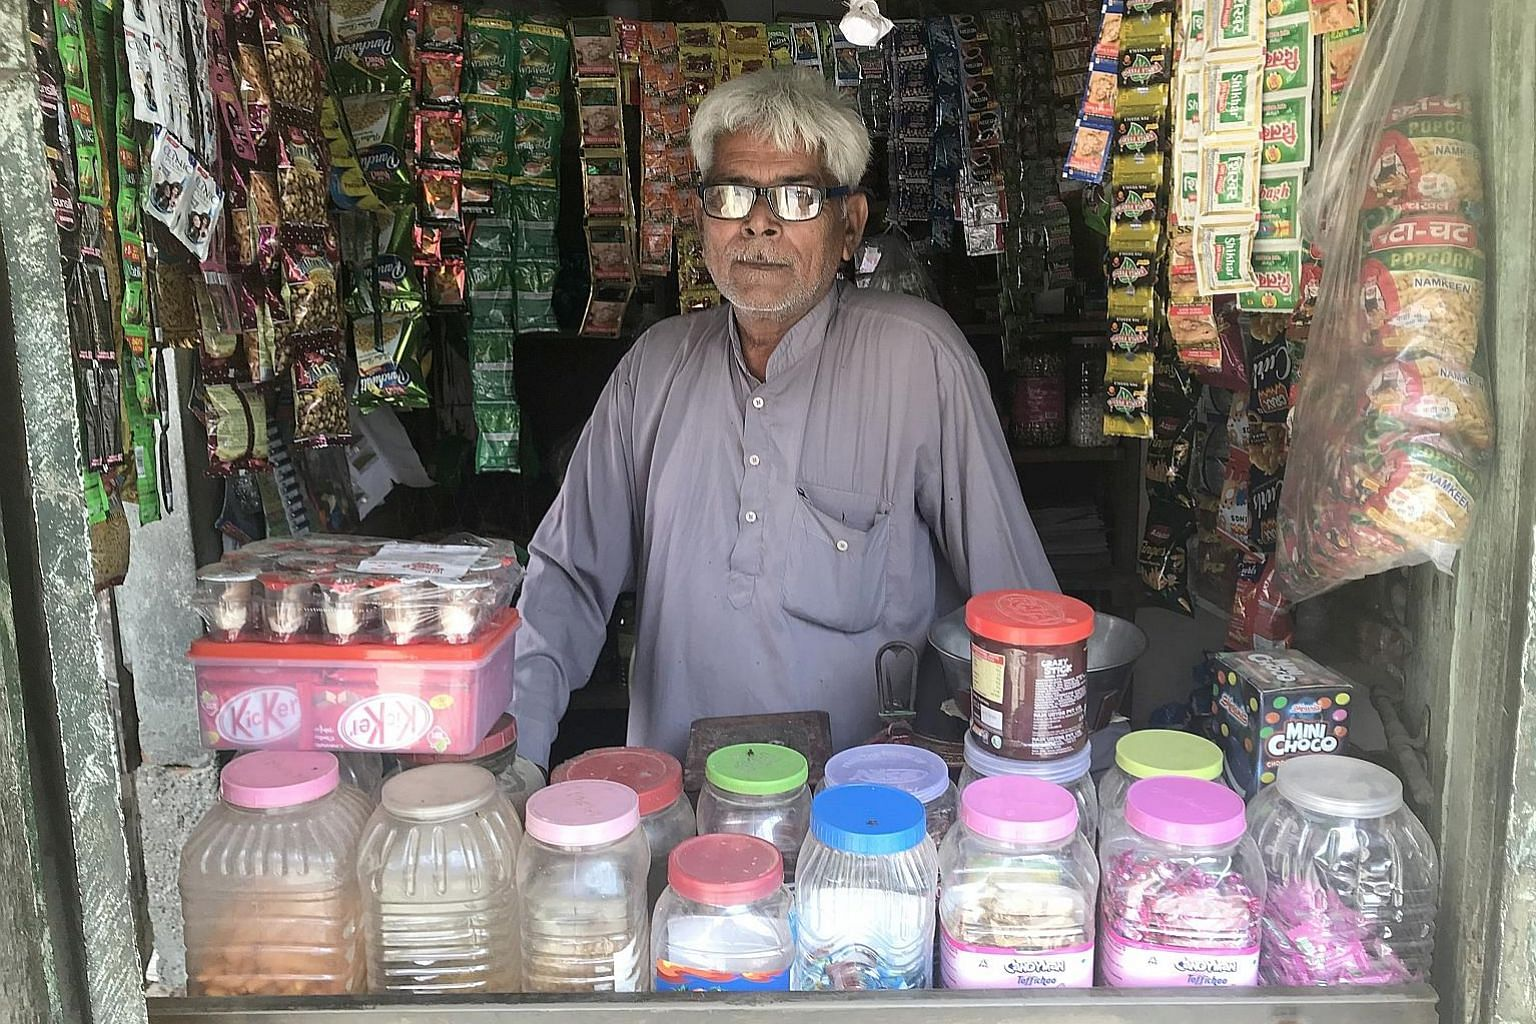 Above: Shopkeeper Moolchand said that over the past two years, his average daily sales have dropped by half. Left: Mr Manu Raghuvanshi, who sells tractors, has seen his sales fall by 25 per cent from last year.